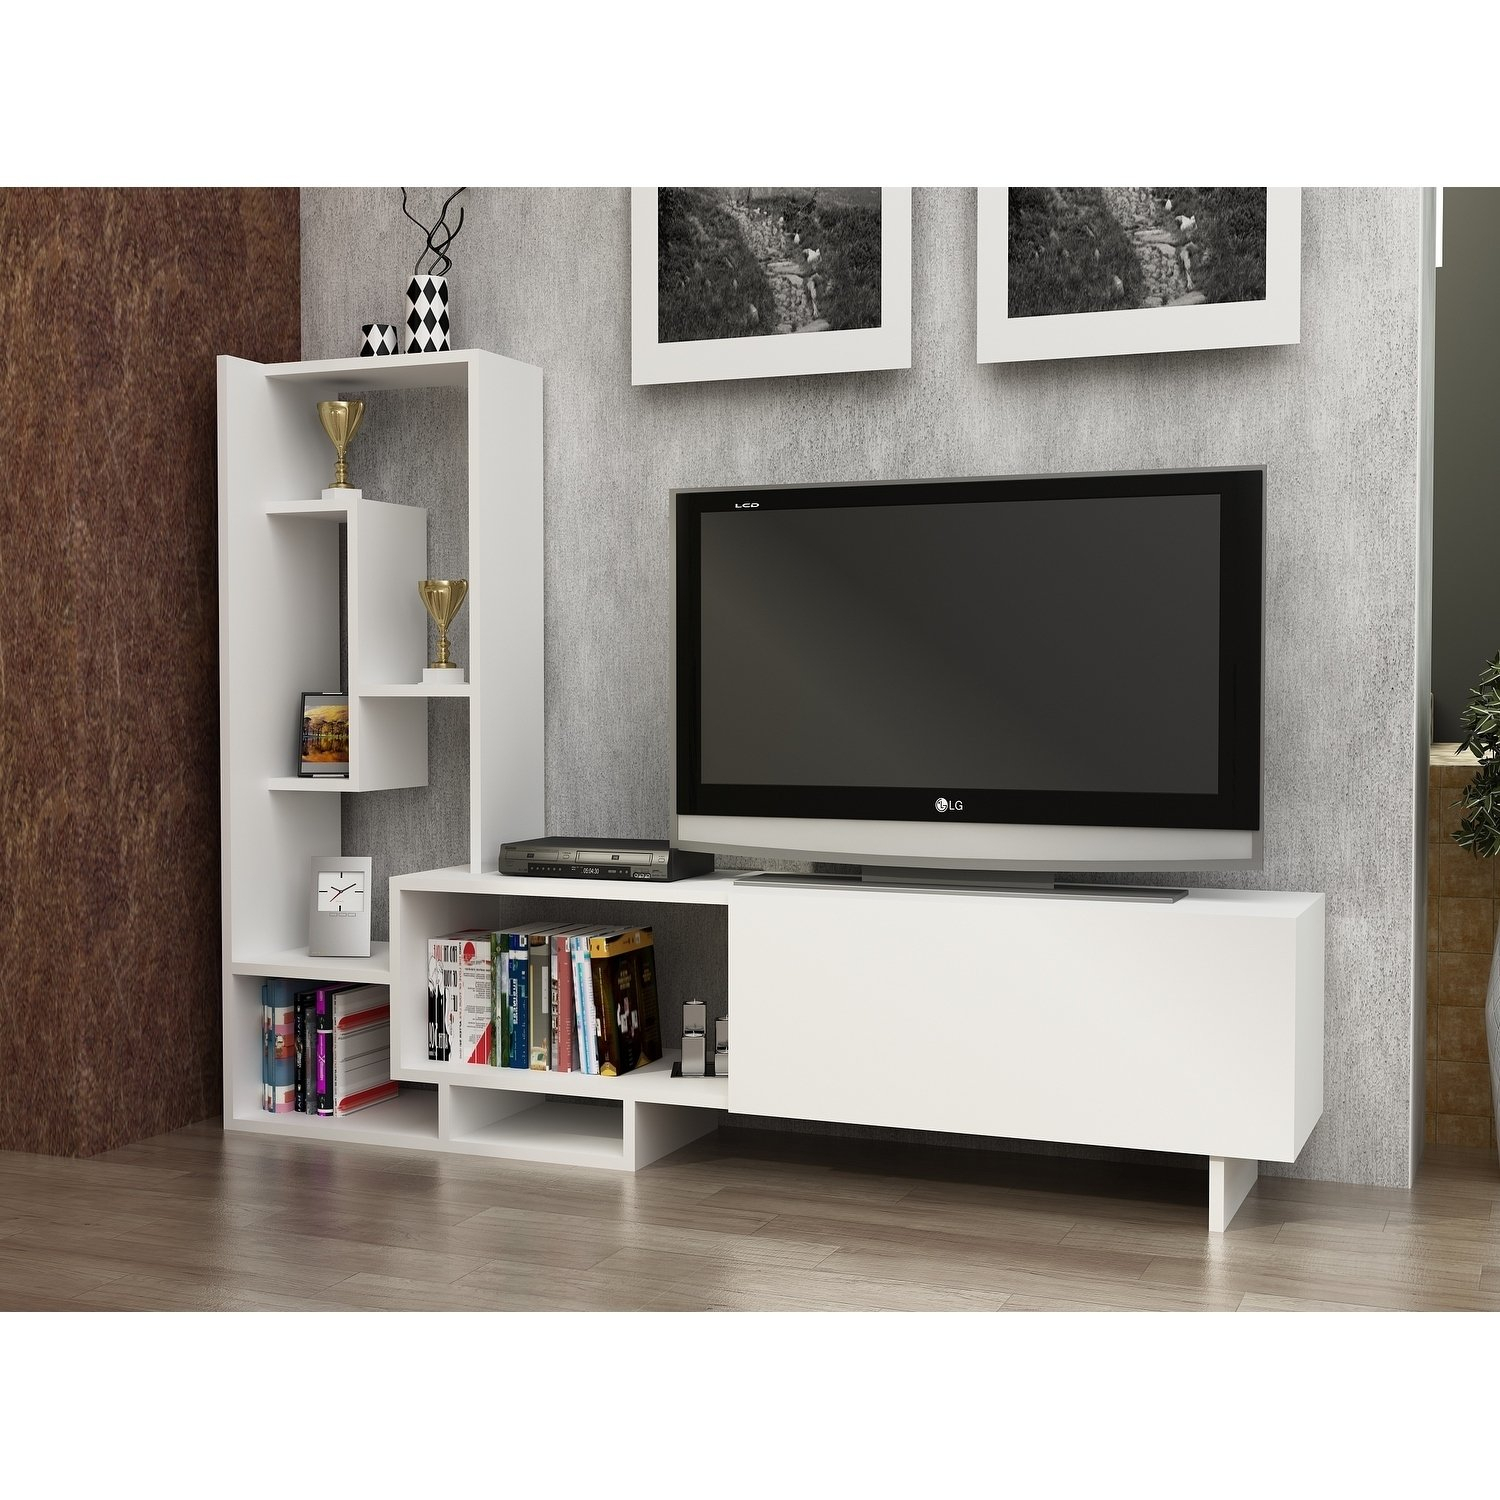 Shop Decorotika Pegai White Wood 60 Inch Tv Stand With Bookshelves Within Century Blue 60 Inch Tv Stands (View 14 of 30)